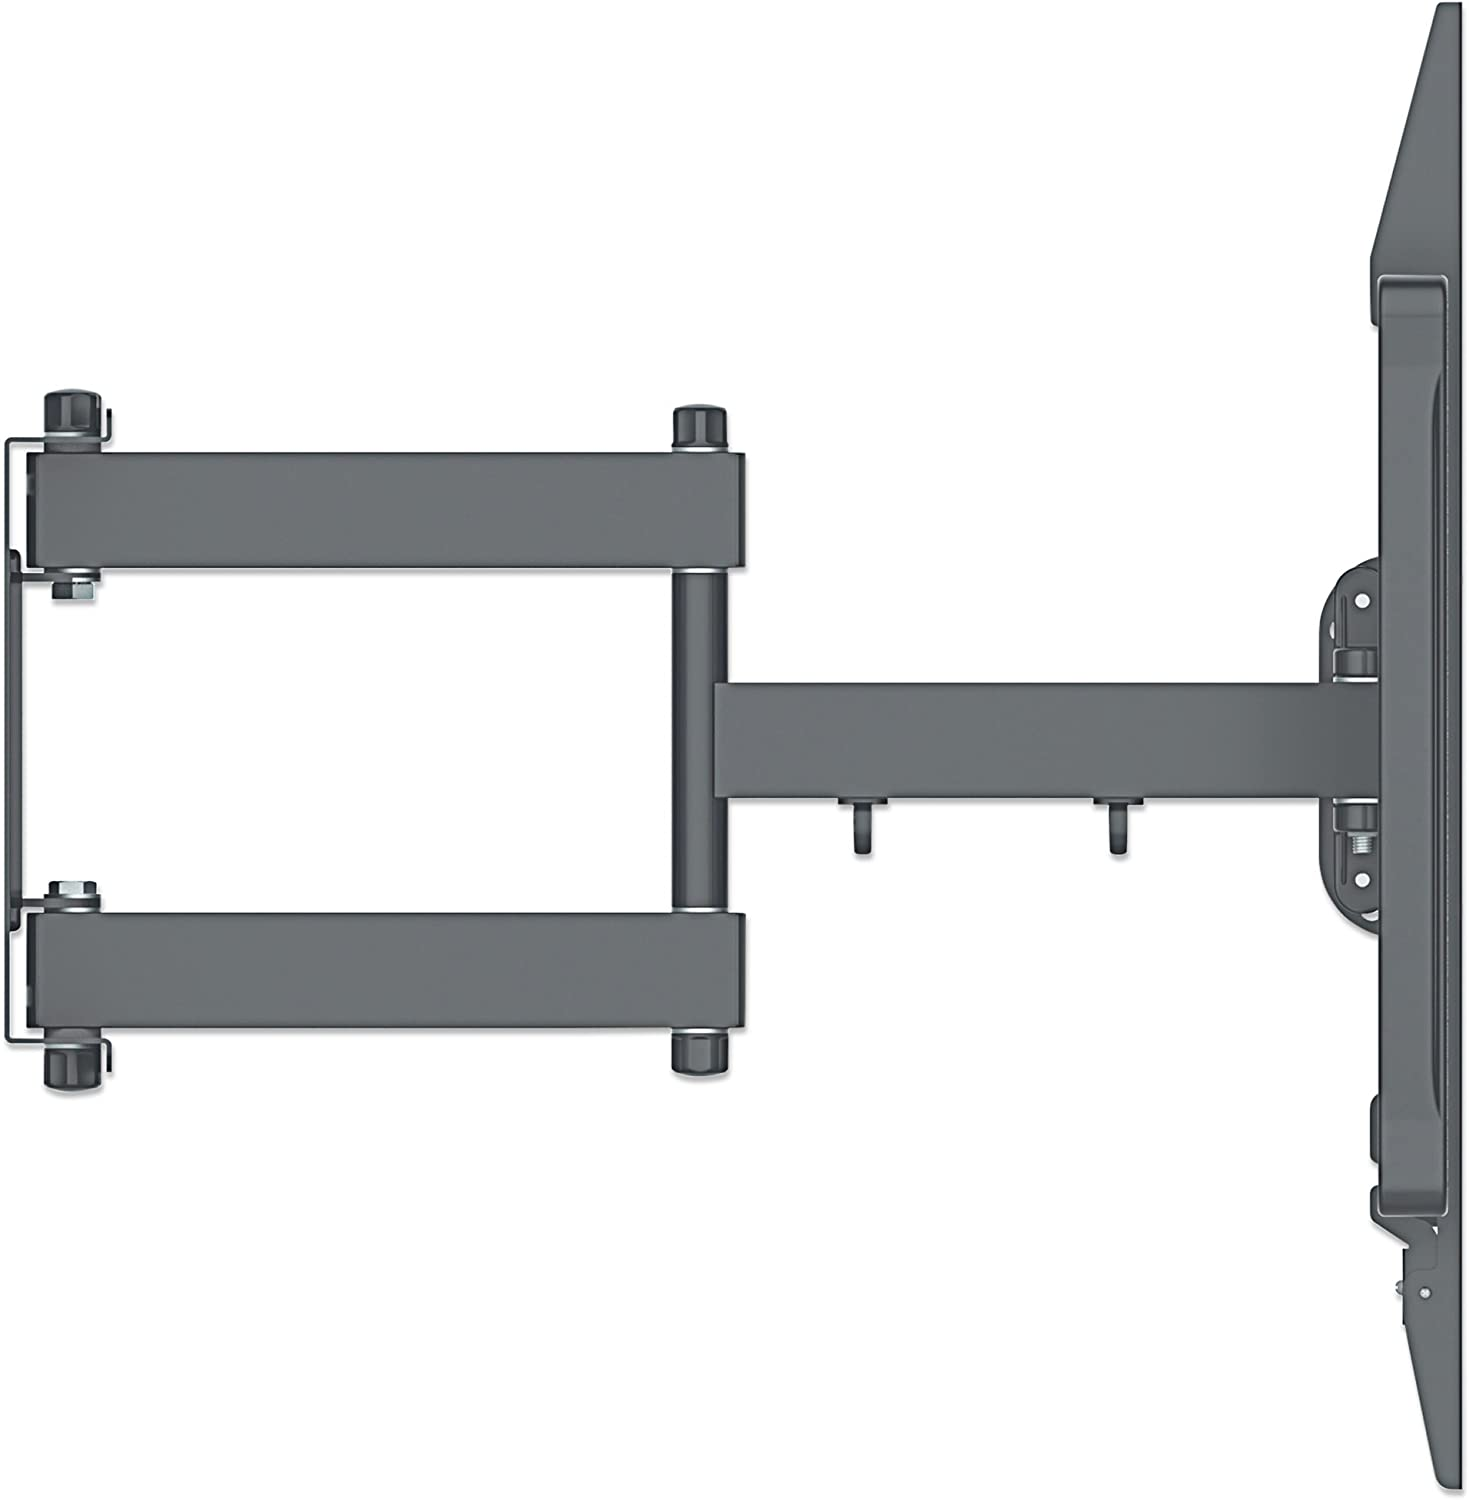 MANHATTAN Universal LCD Full Motion Large Screen Wall Mount 60-100 Inch Flat Panel and Curved Display TV Compatible Load Capacity 80Kg